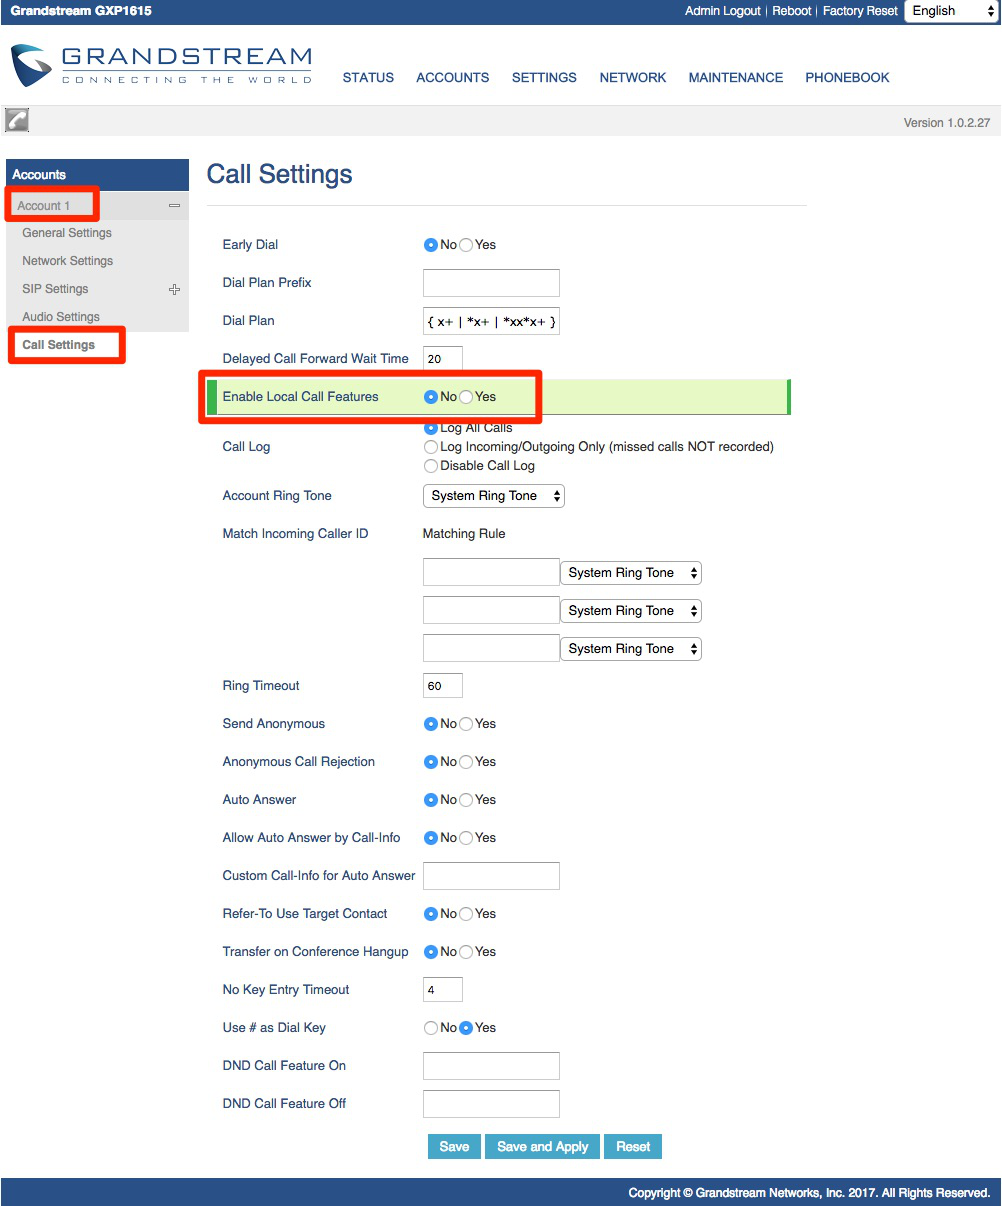 Visit Accounts, Account 1, Call Settings, and disable Local Call Features